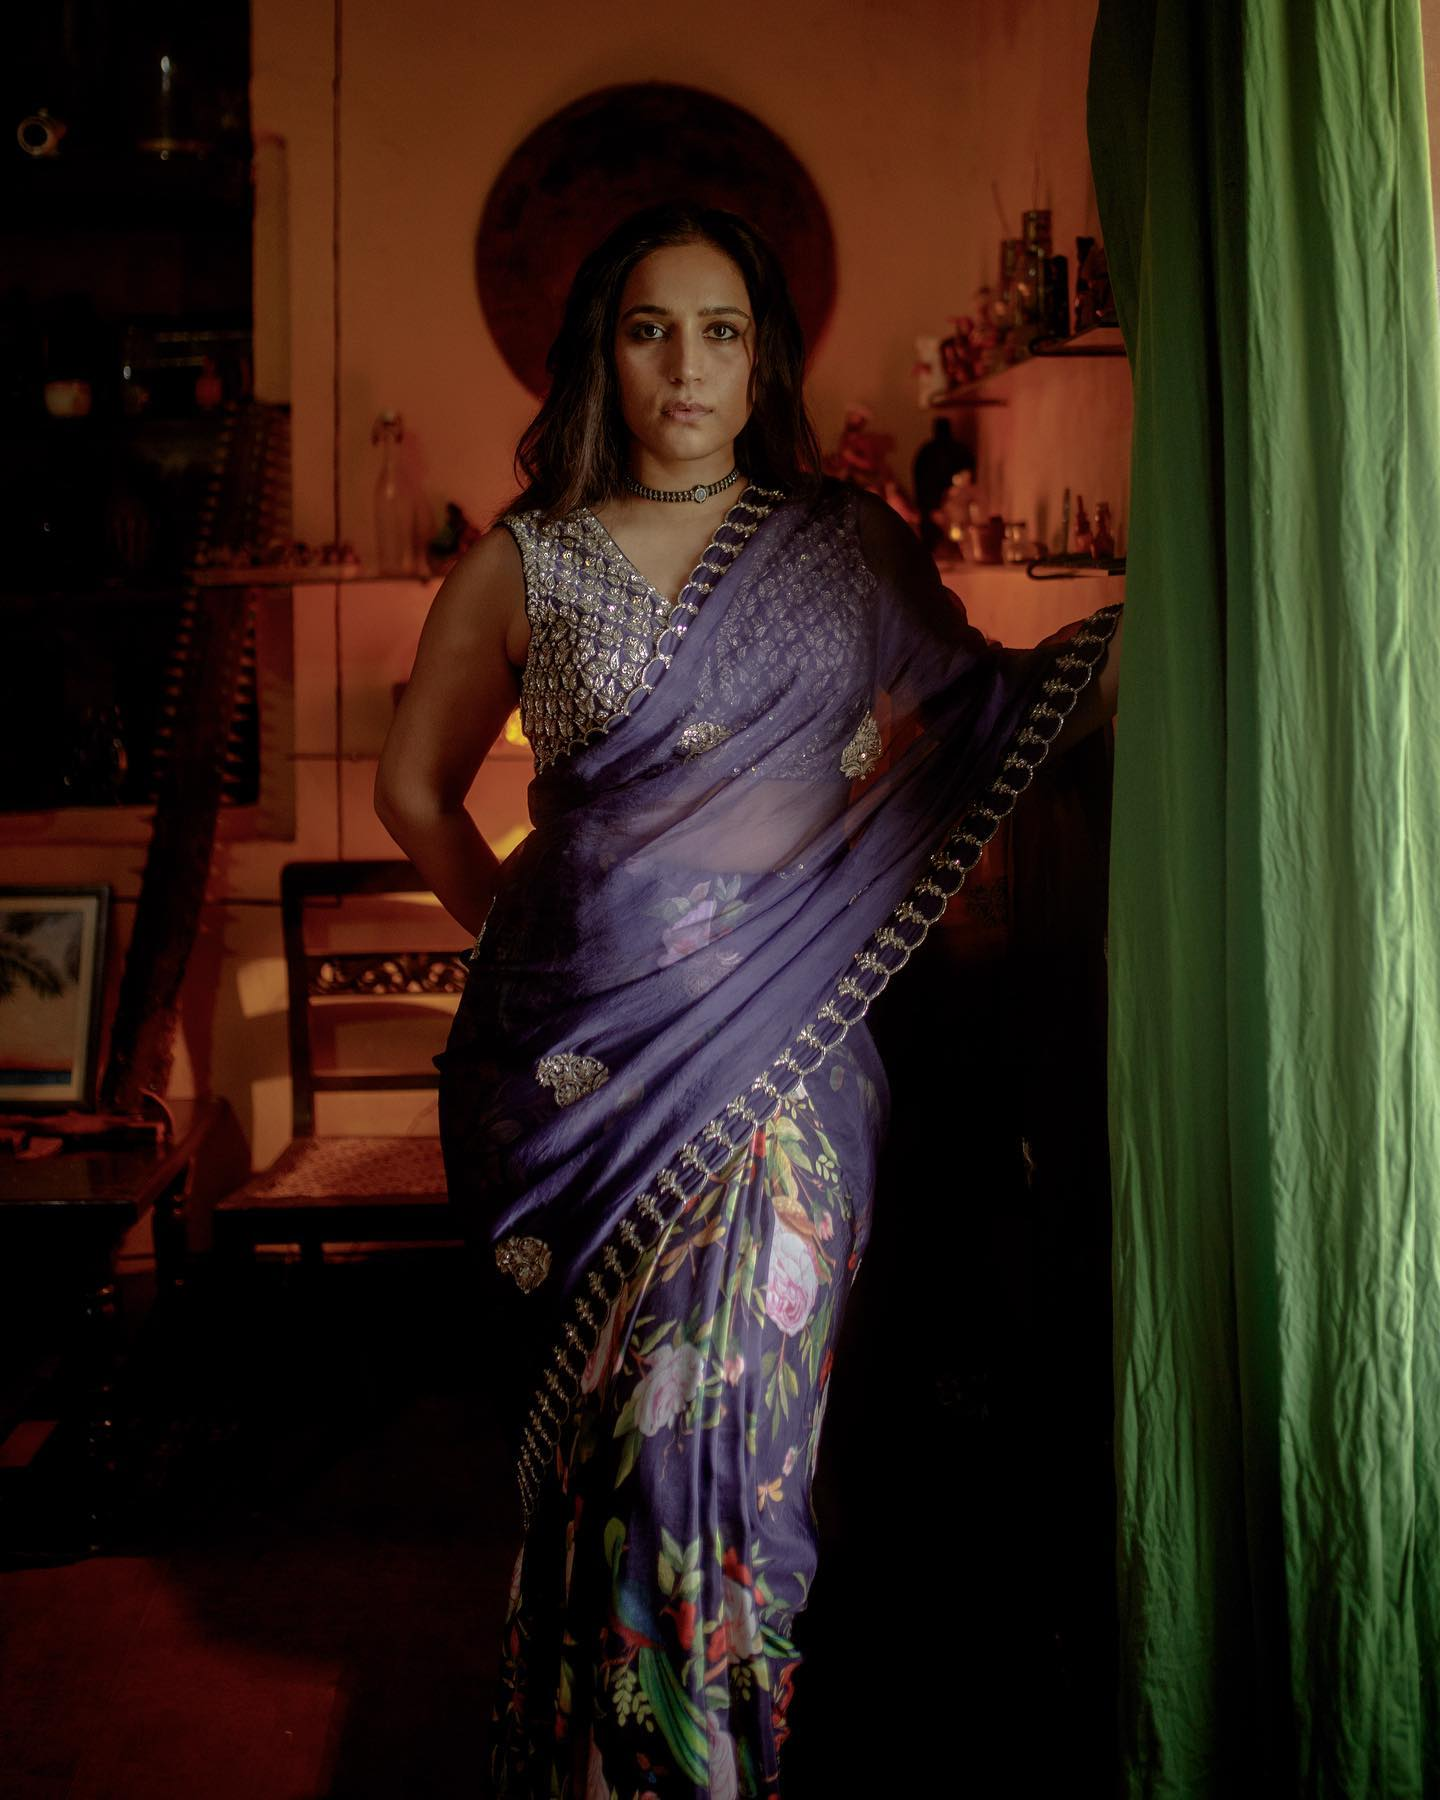 A subtle beauty characterizes the Zoya collection. Floral and embroidered details in vintage hues express a timeless feminity translated into six yards of love.  Zoya @zyhssn wears Vana deep violet organza saree paired with a zardosi blouse. 2021-10-05